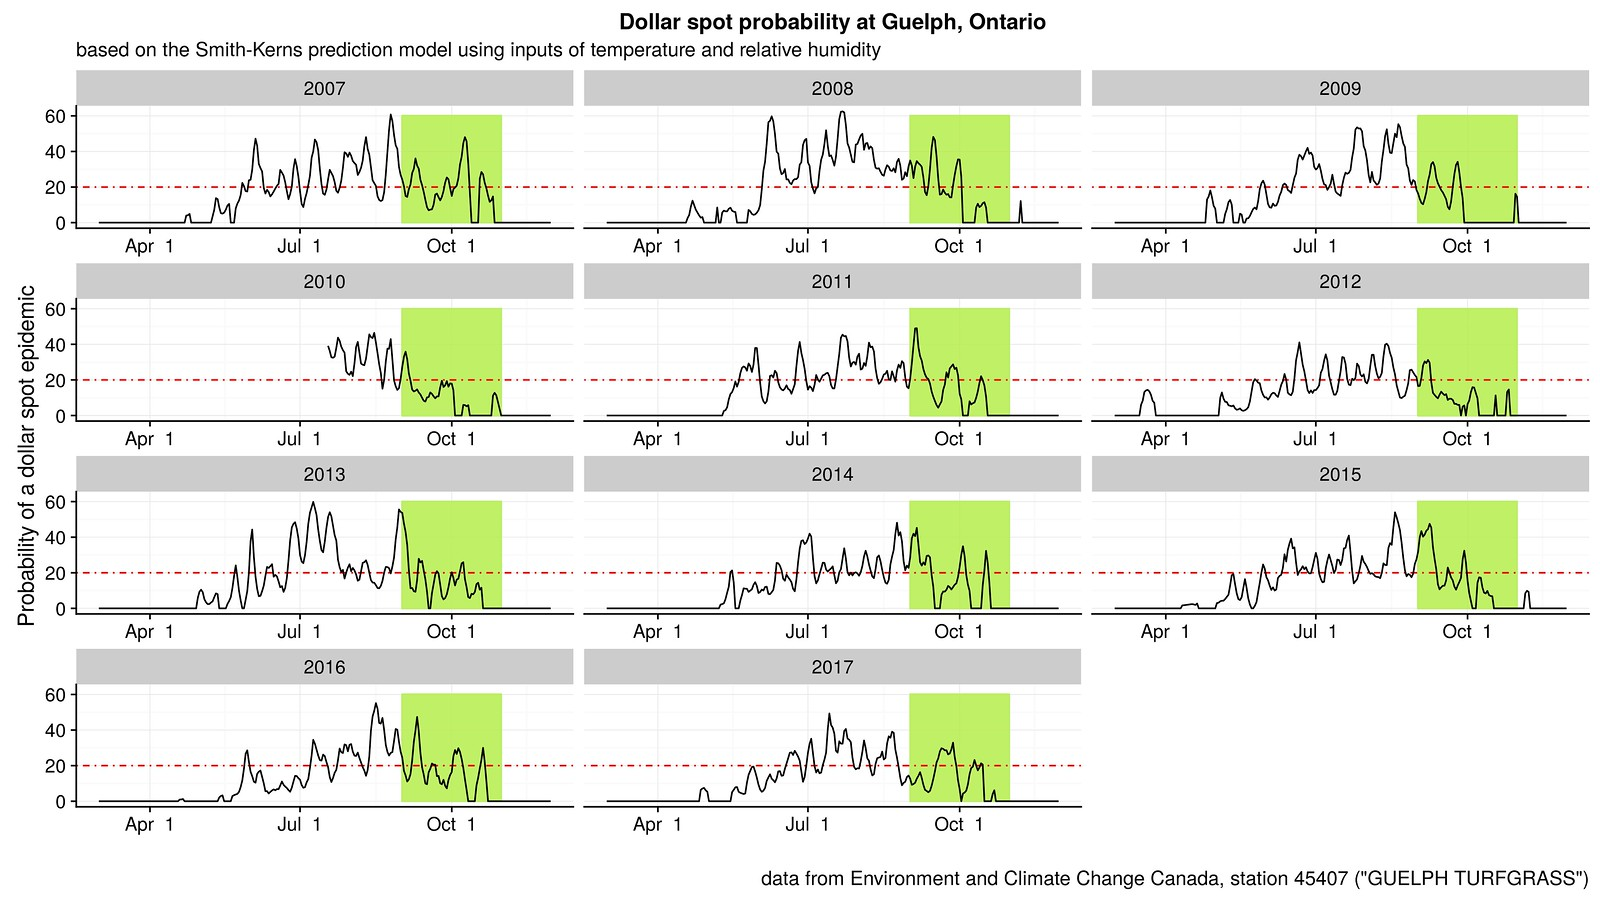 11 years of Smith-Kerns dollar spot prediction model output for Guelph, Ontario